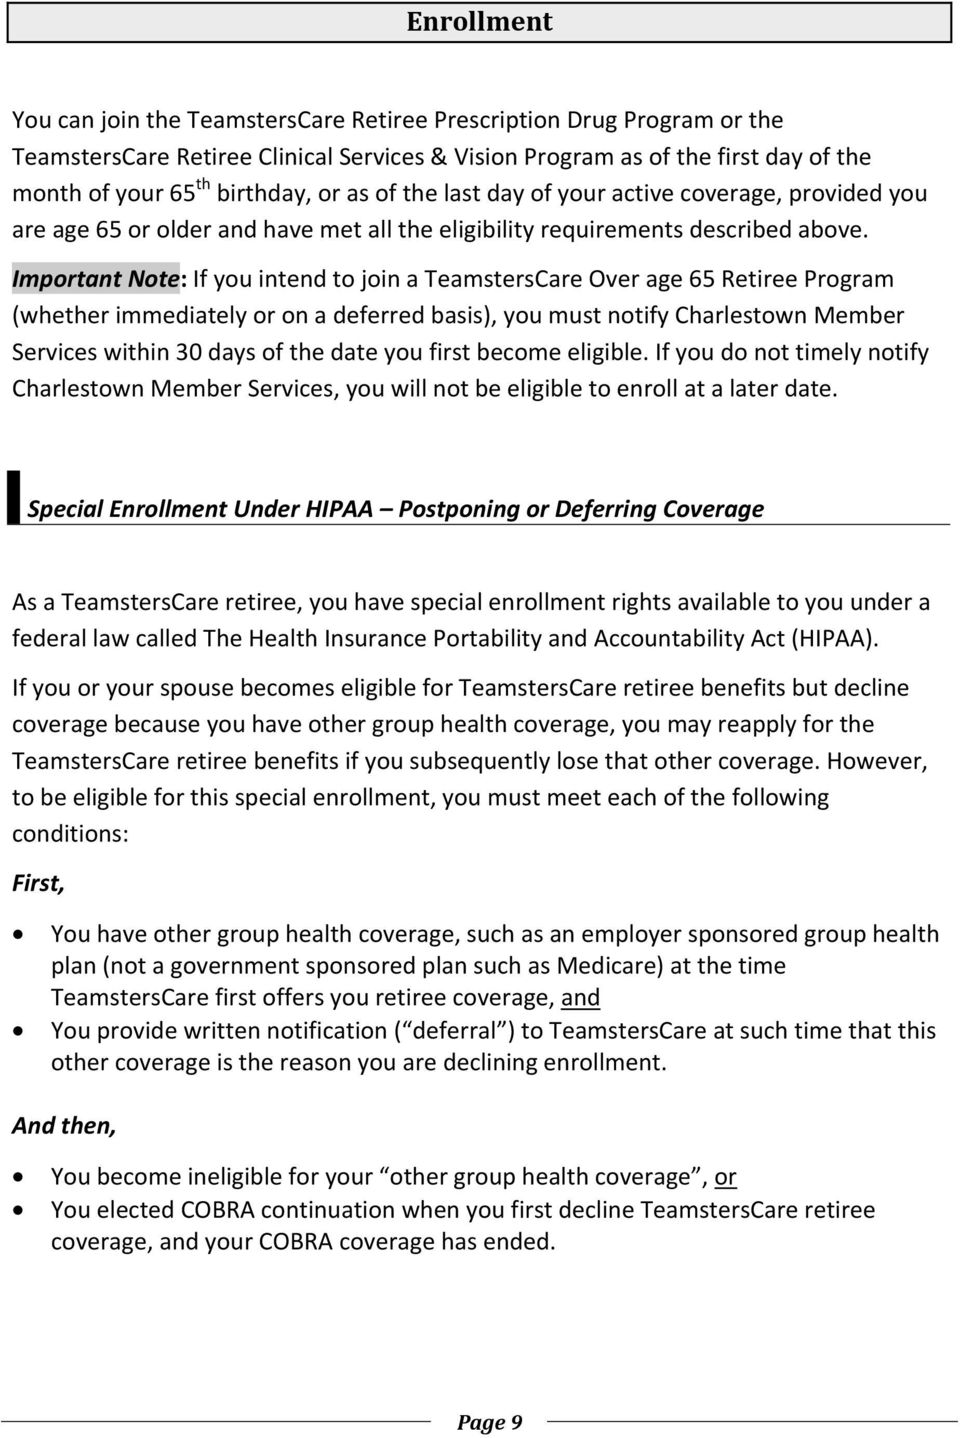 Important Note: If you intend to join a TeamstersCare Over age 65 Retiree Program (whether immediately or on a deferred basis), you must notify Charlestown Member Services within 30 days of the date